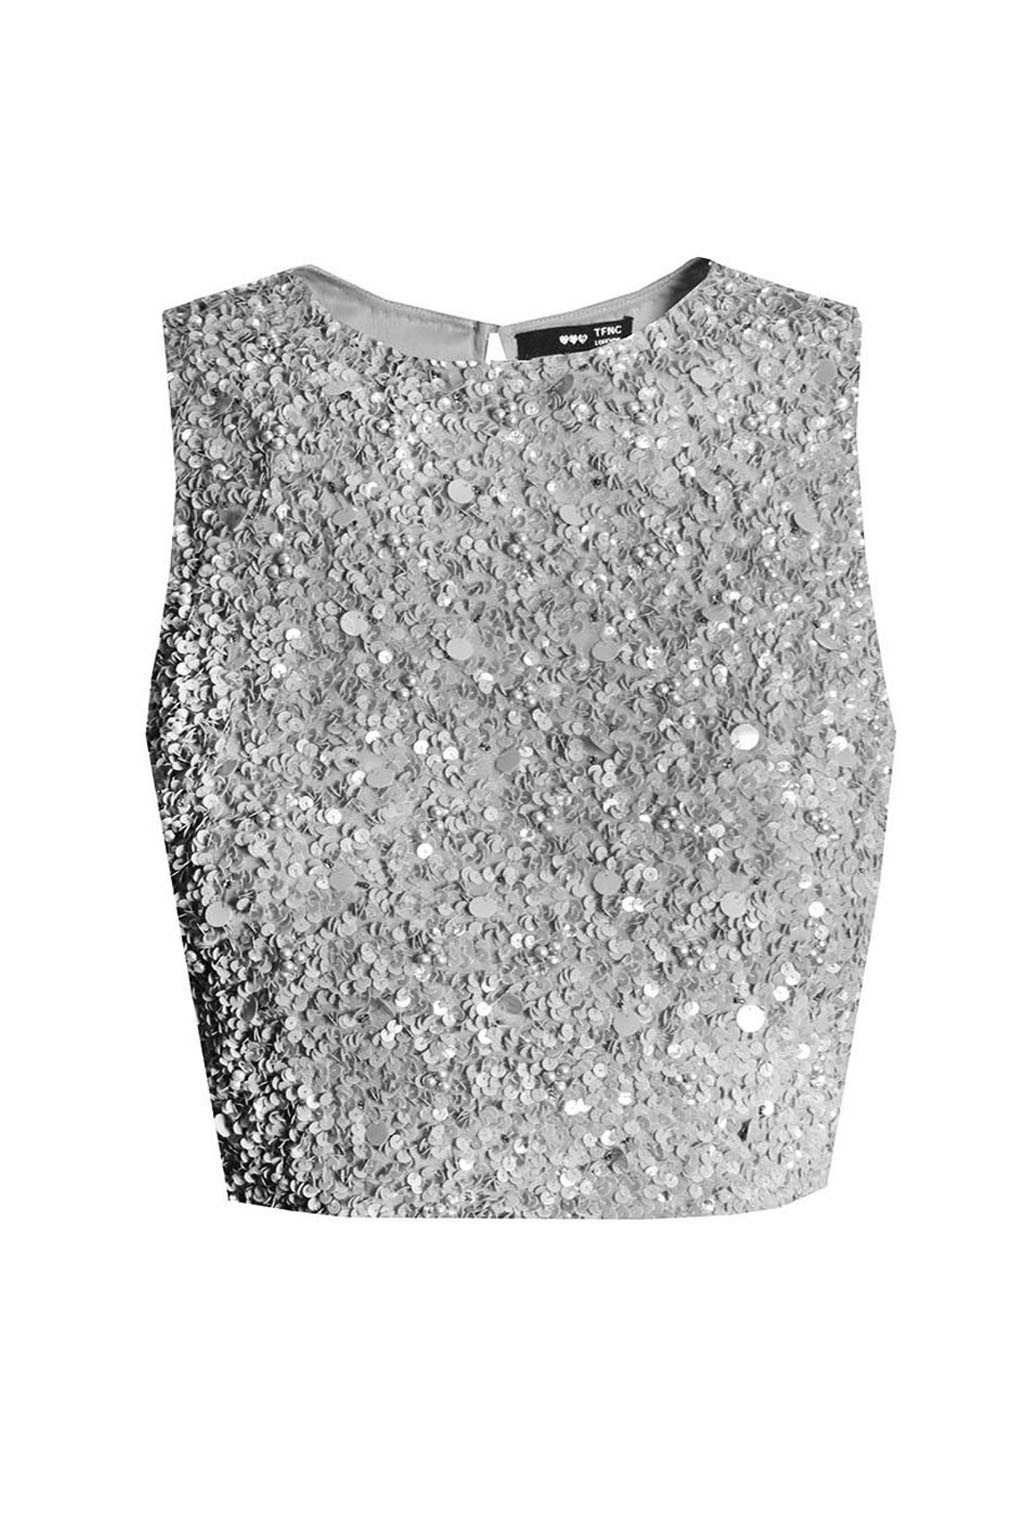 Lace Amp Beads Picasso Grey Embellished Dress Party Dresses